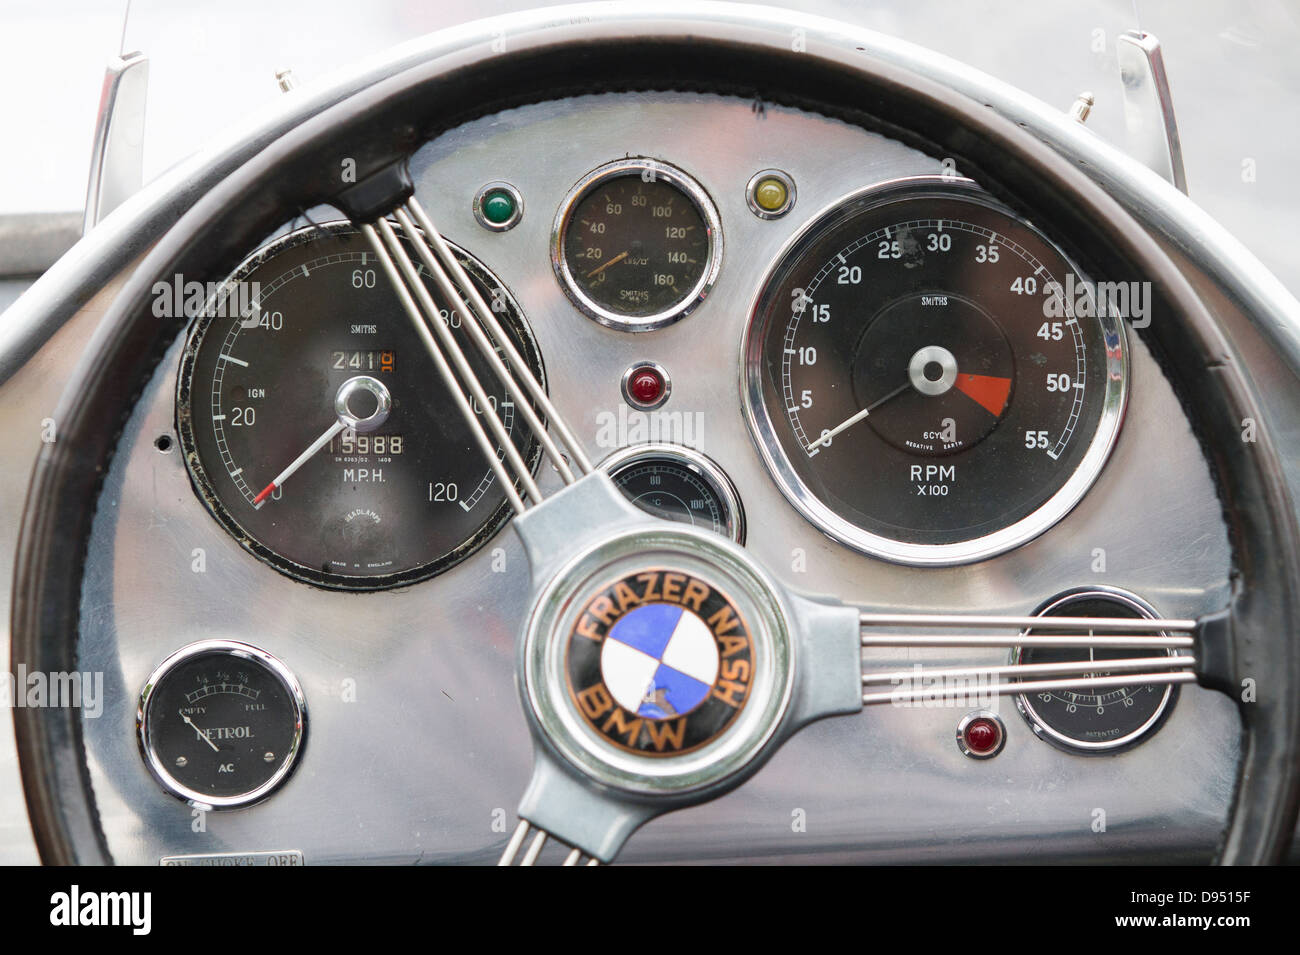 Interior Dashboard Of A Classic Bmw Car Pictured Outdoors Stock